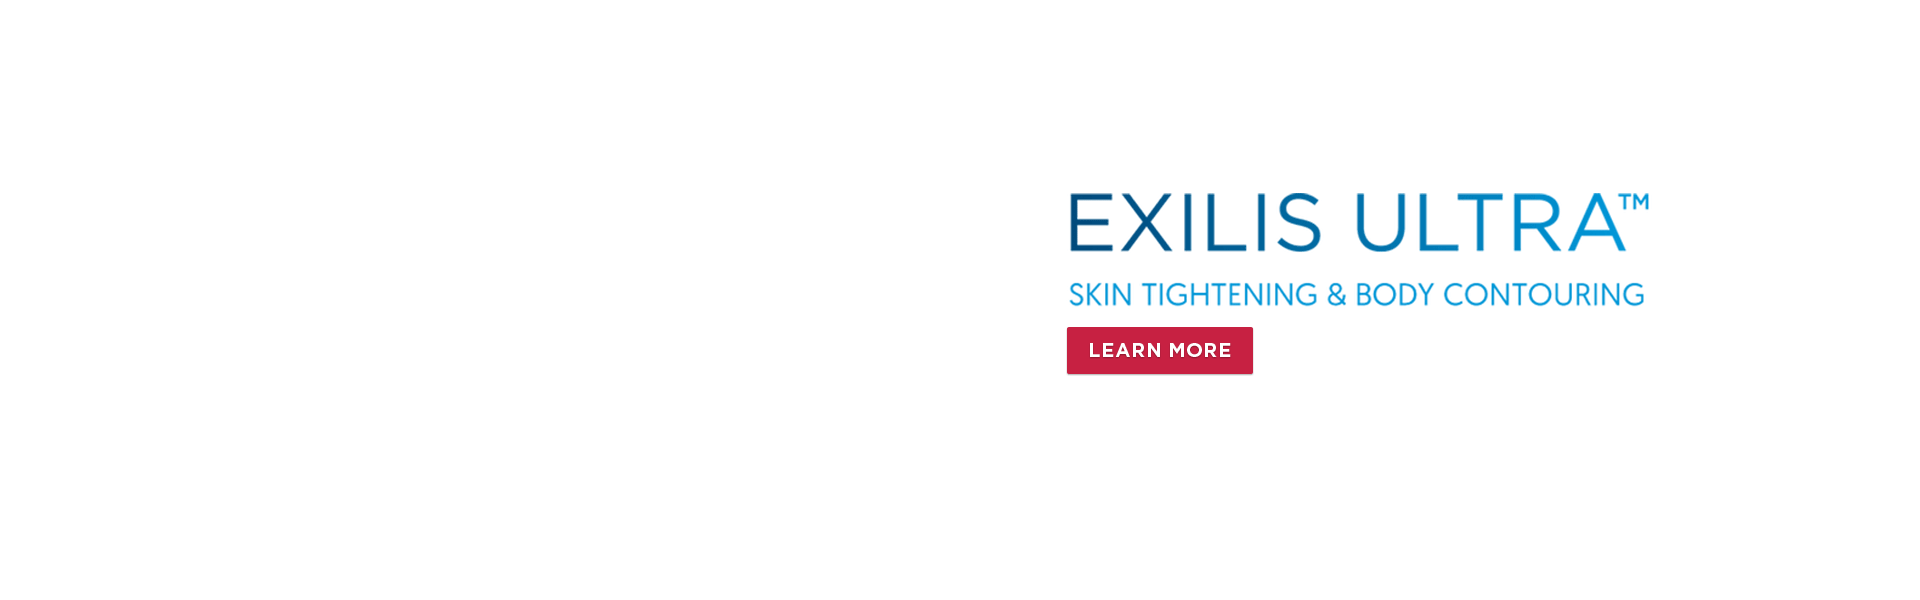 , Exilis Ultra for skin tightening!